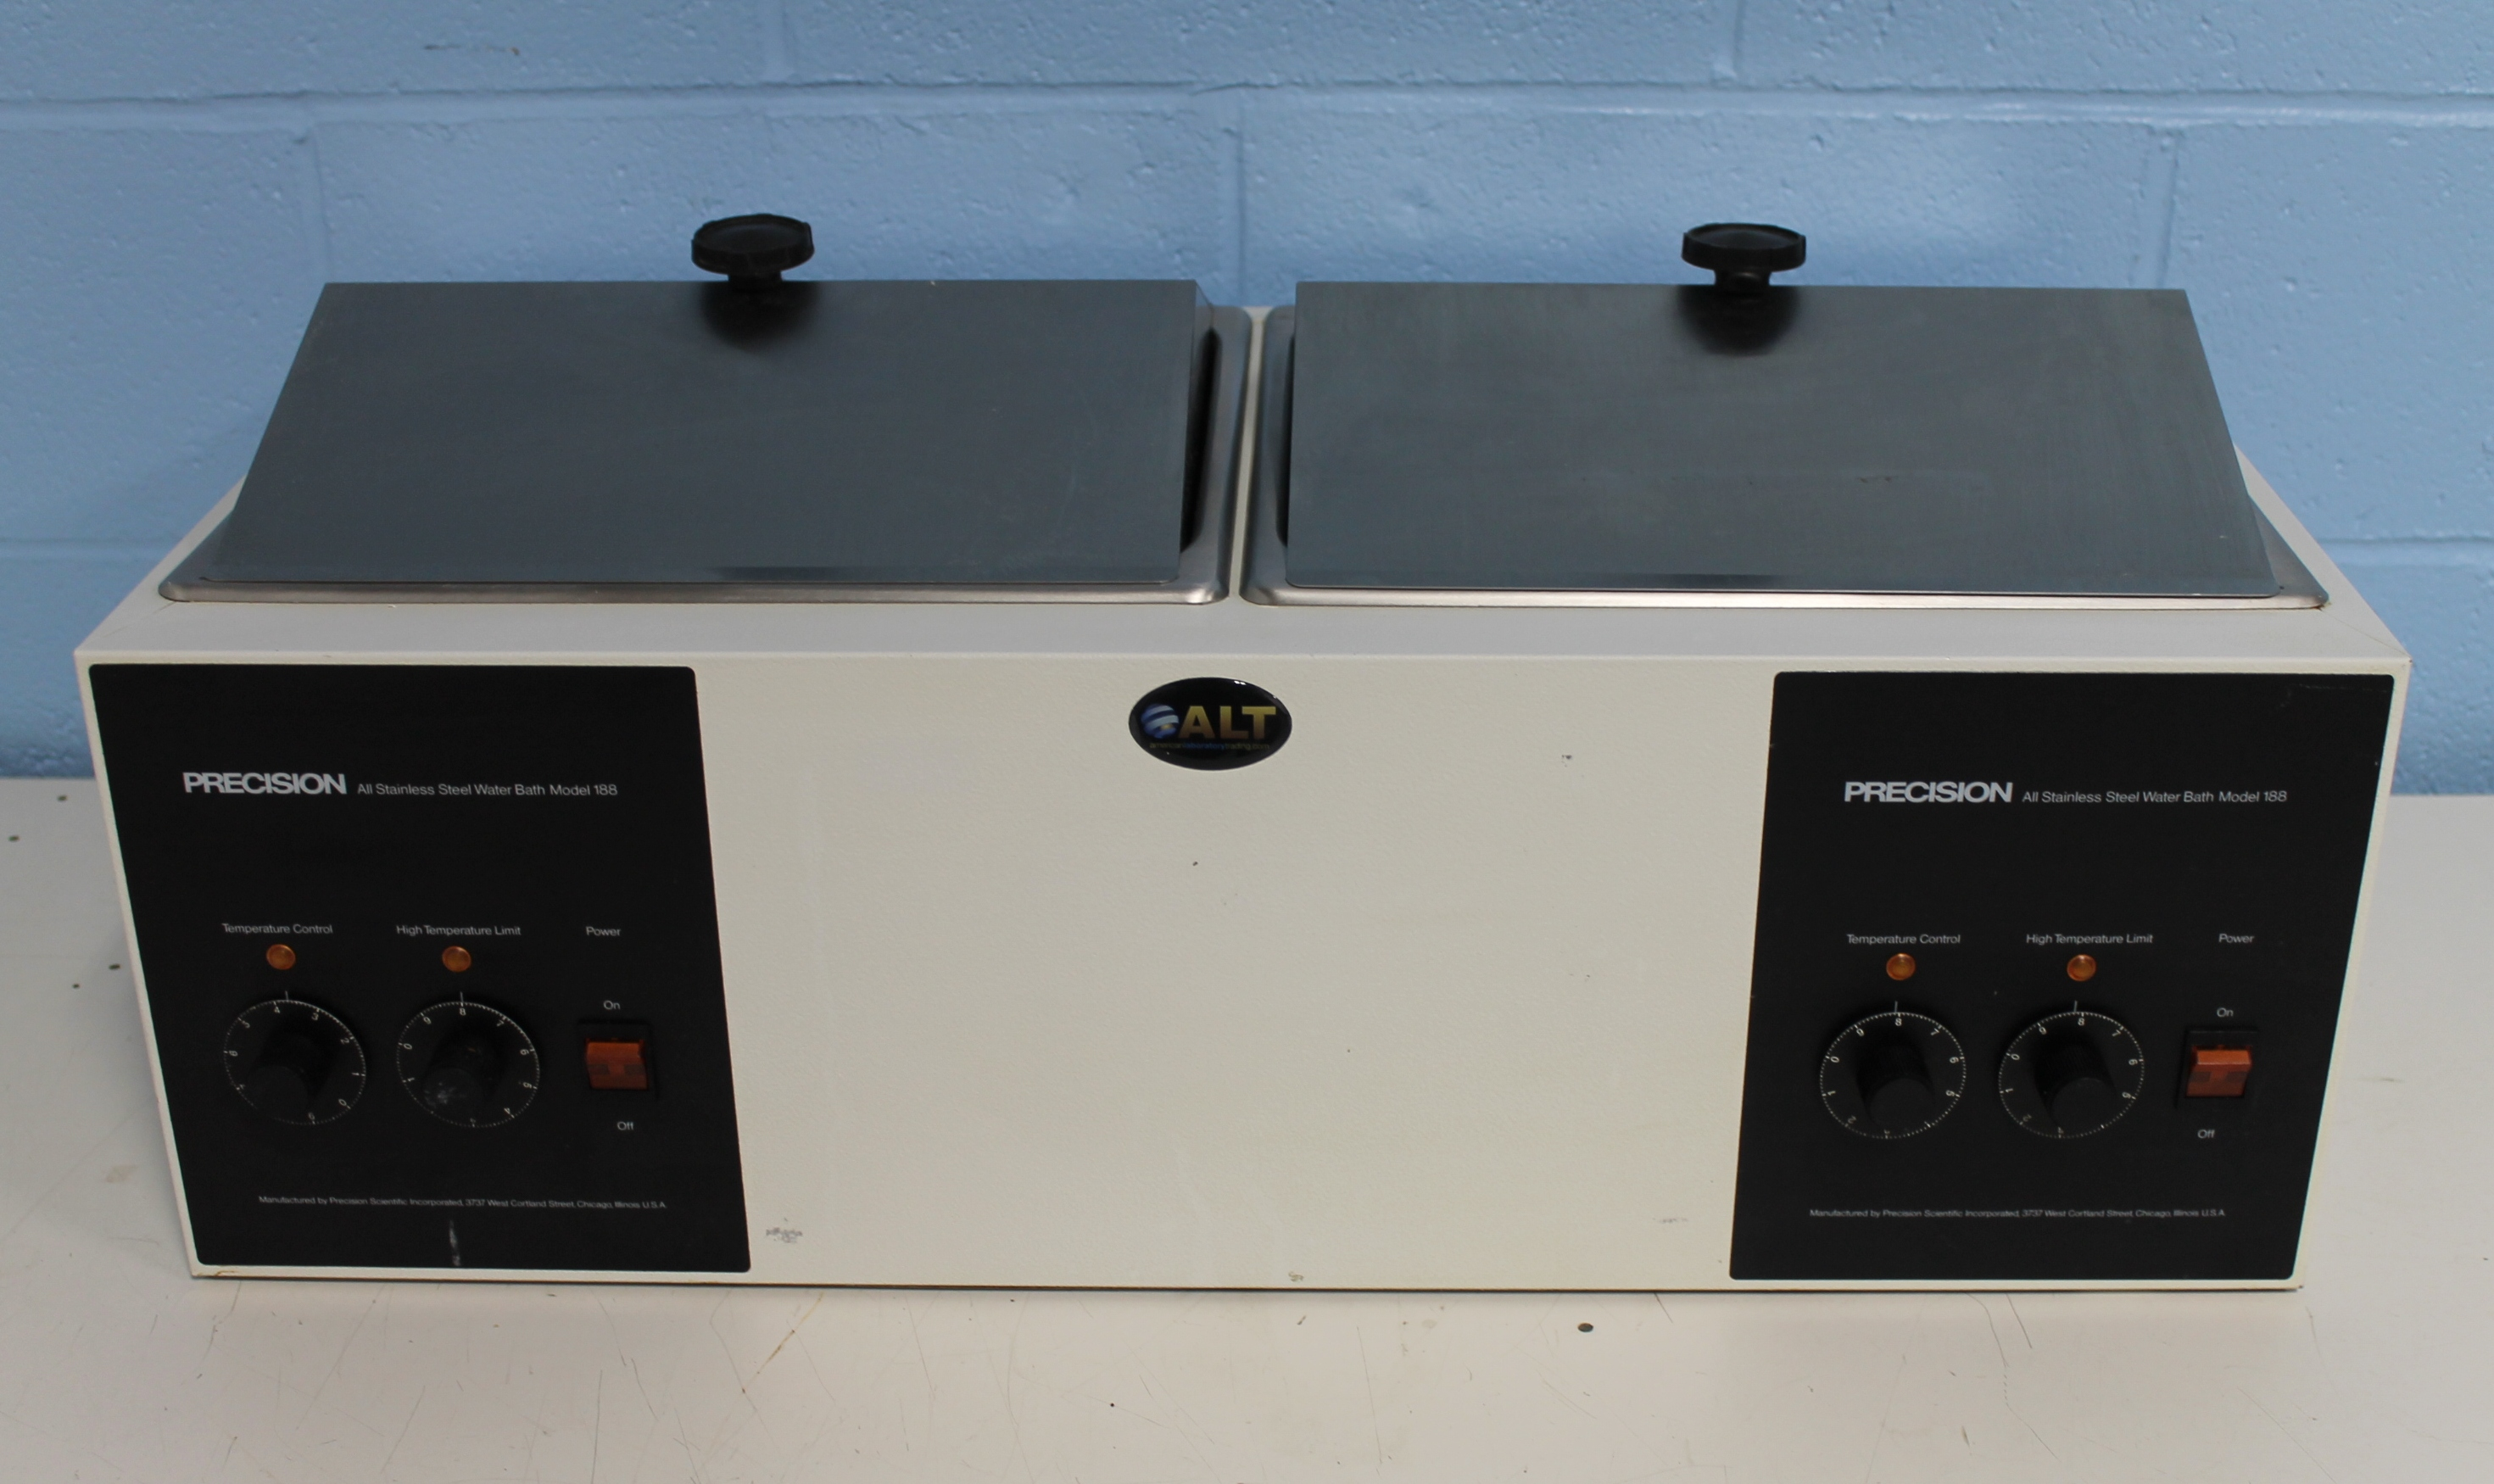 Refurbished Precision Scientific 188 Stainless Steel Dual